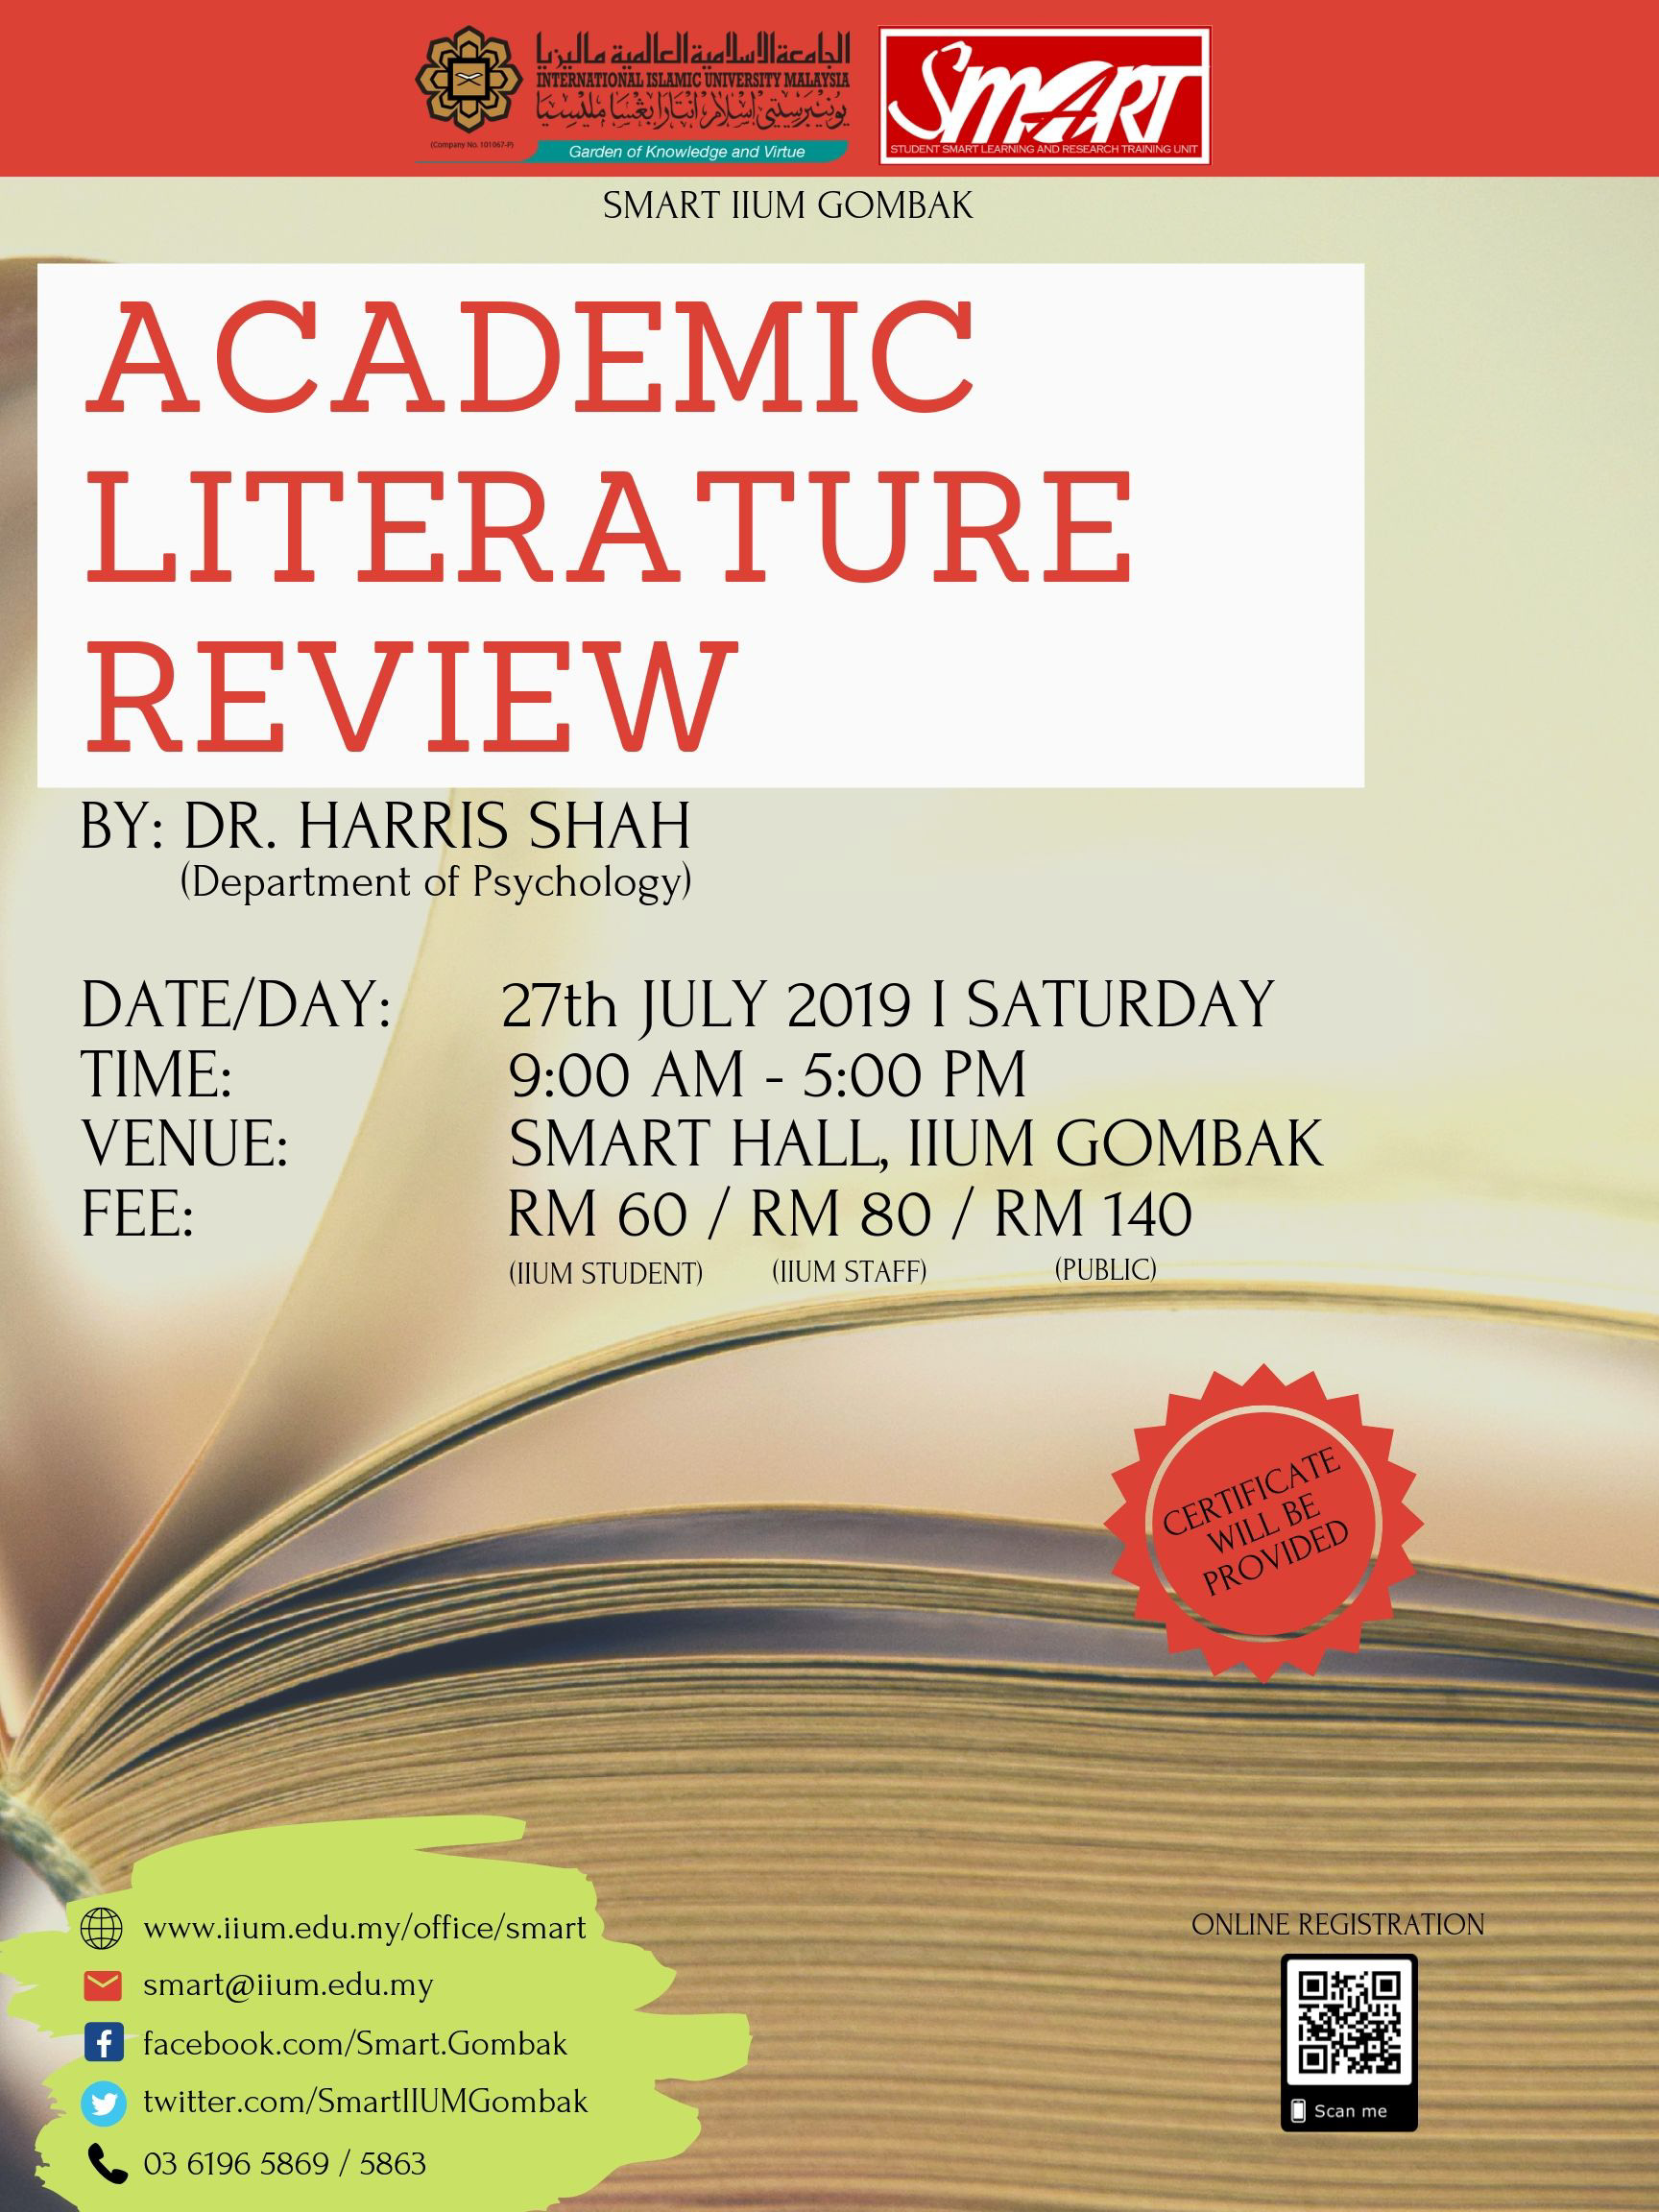 WORKSHOP : ACADEMIC LITERATURE REVIEW